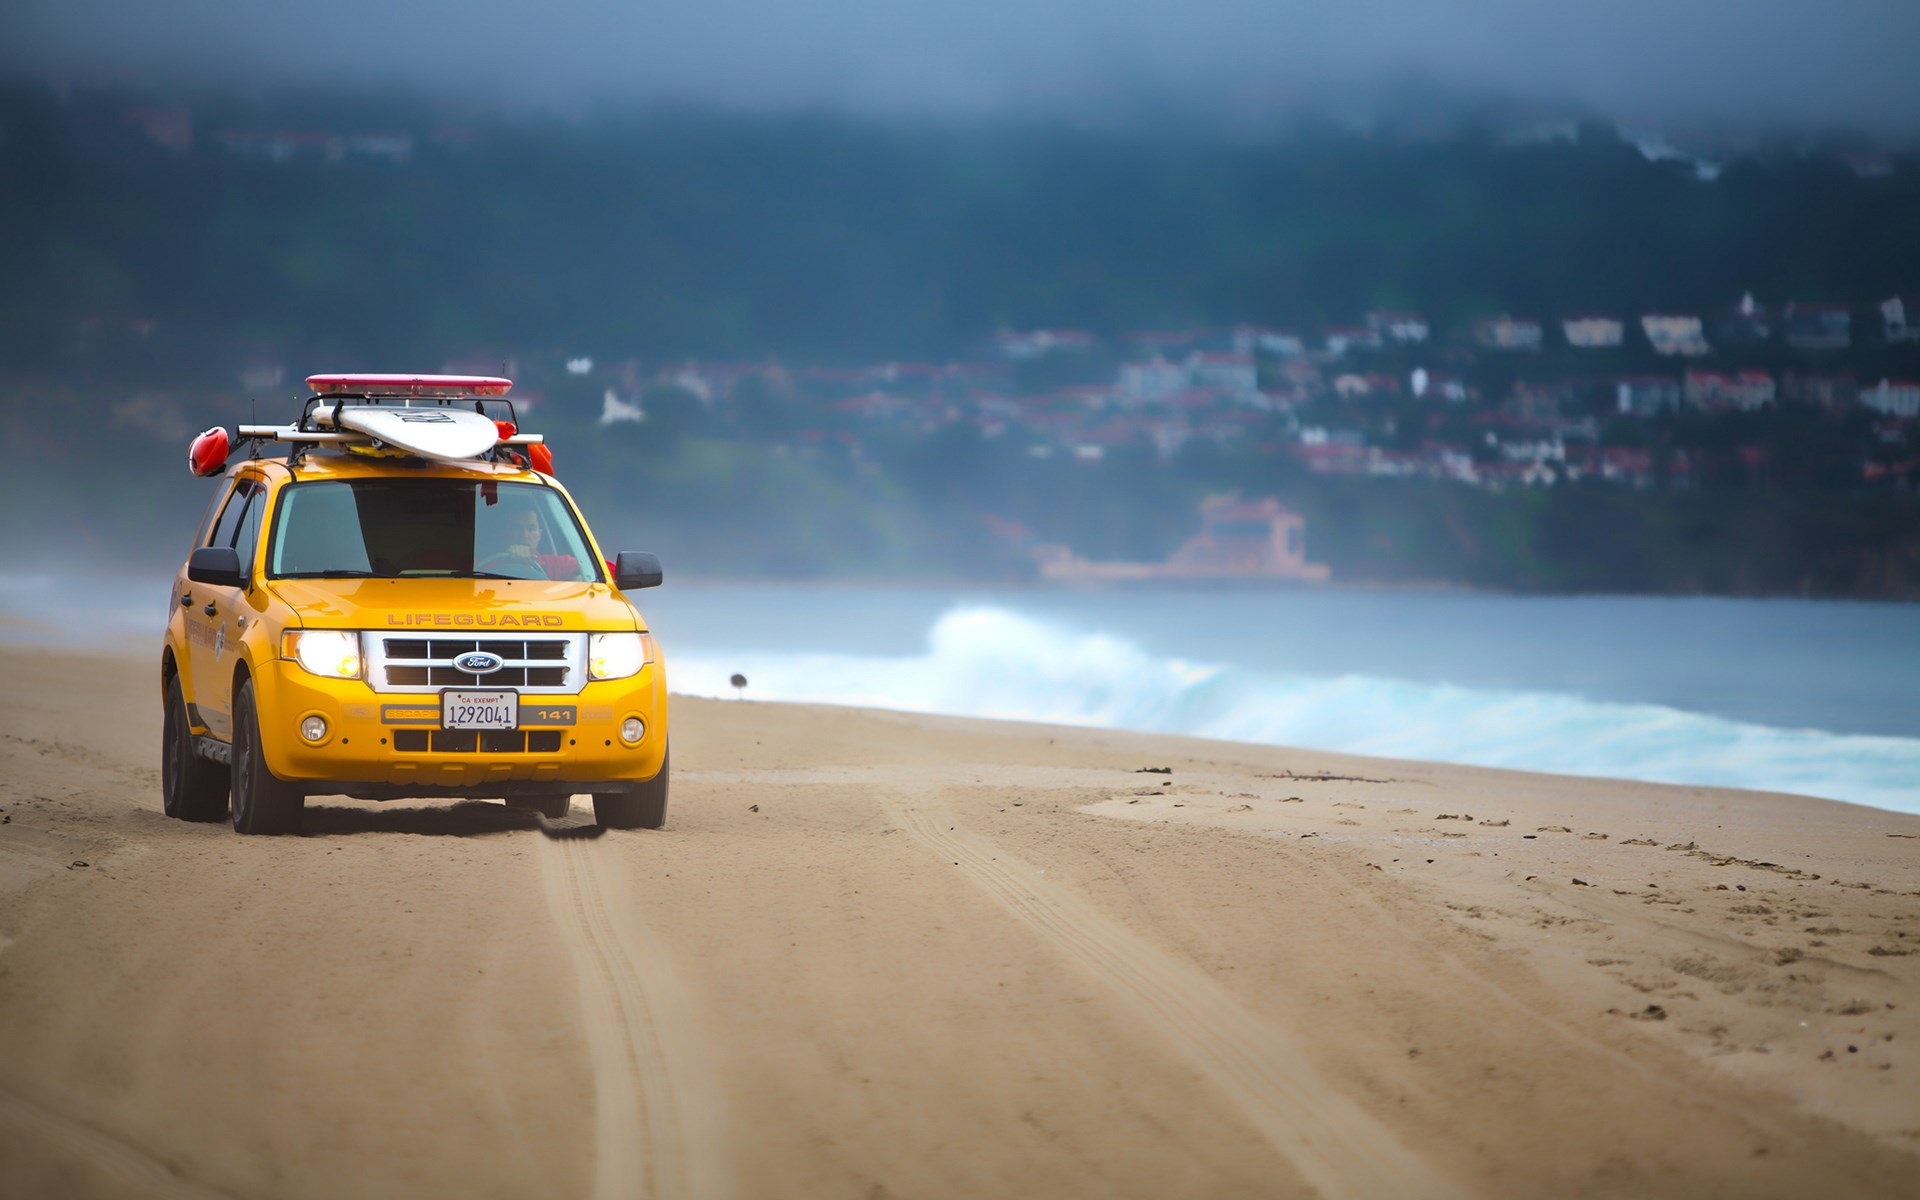 Beach Ford SUV Lifeguard